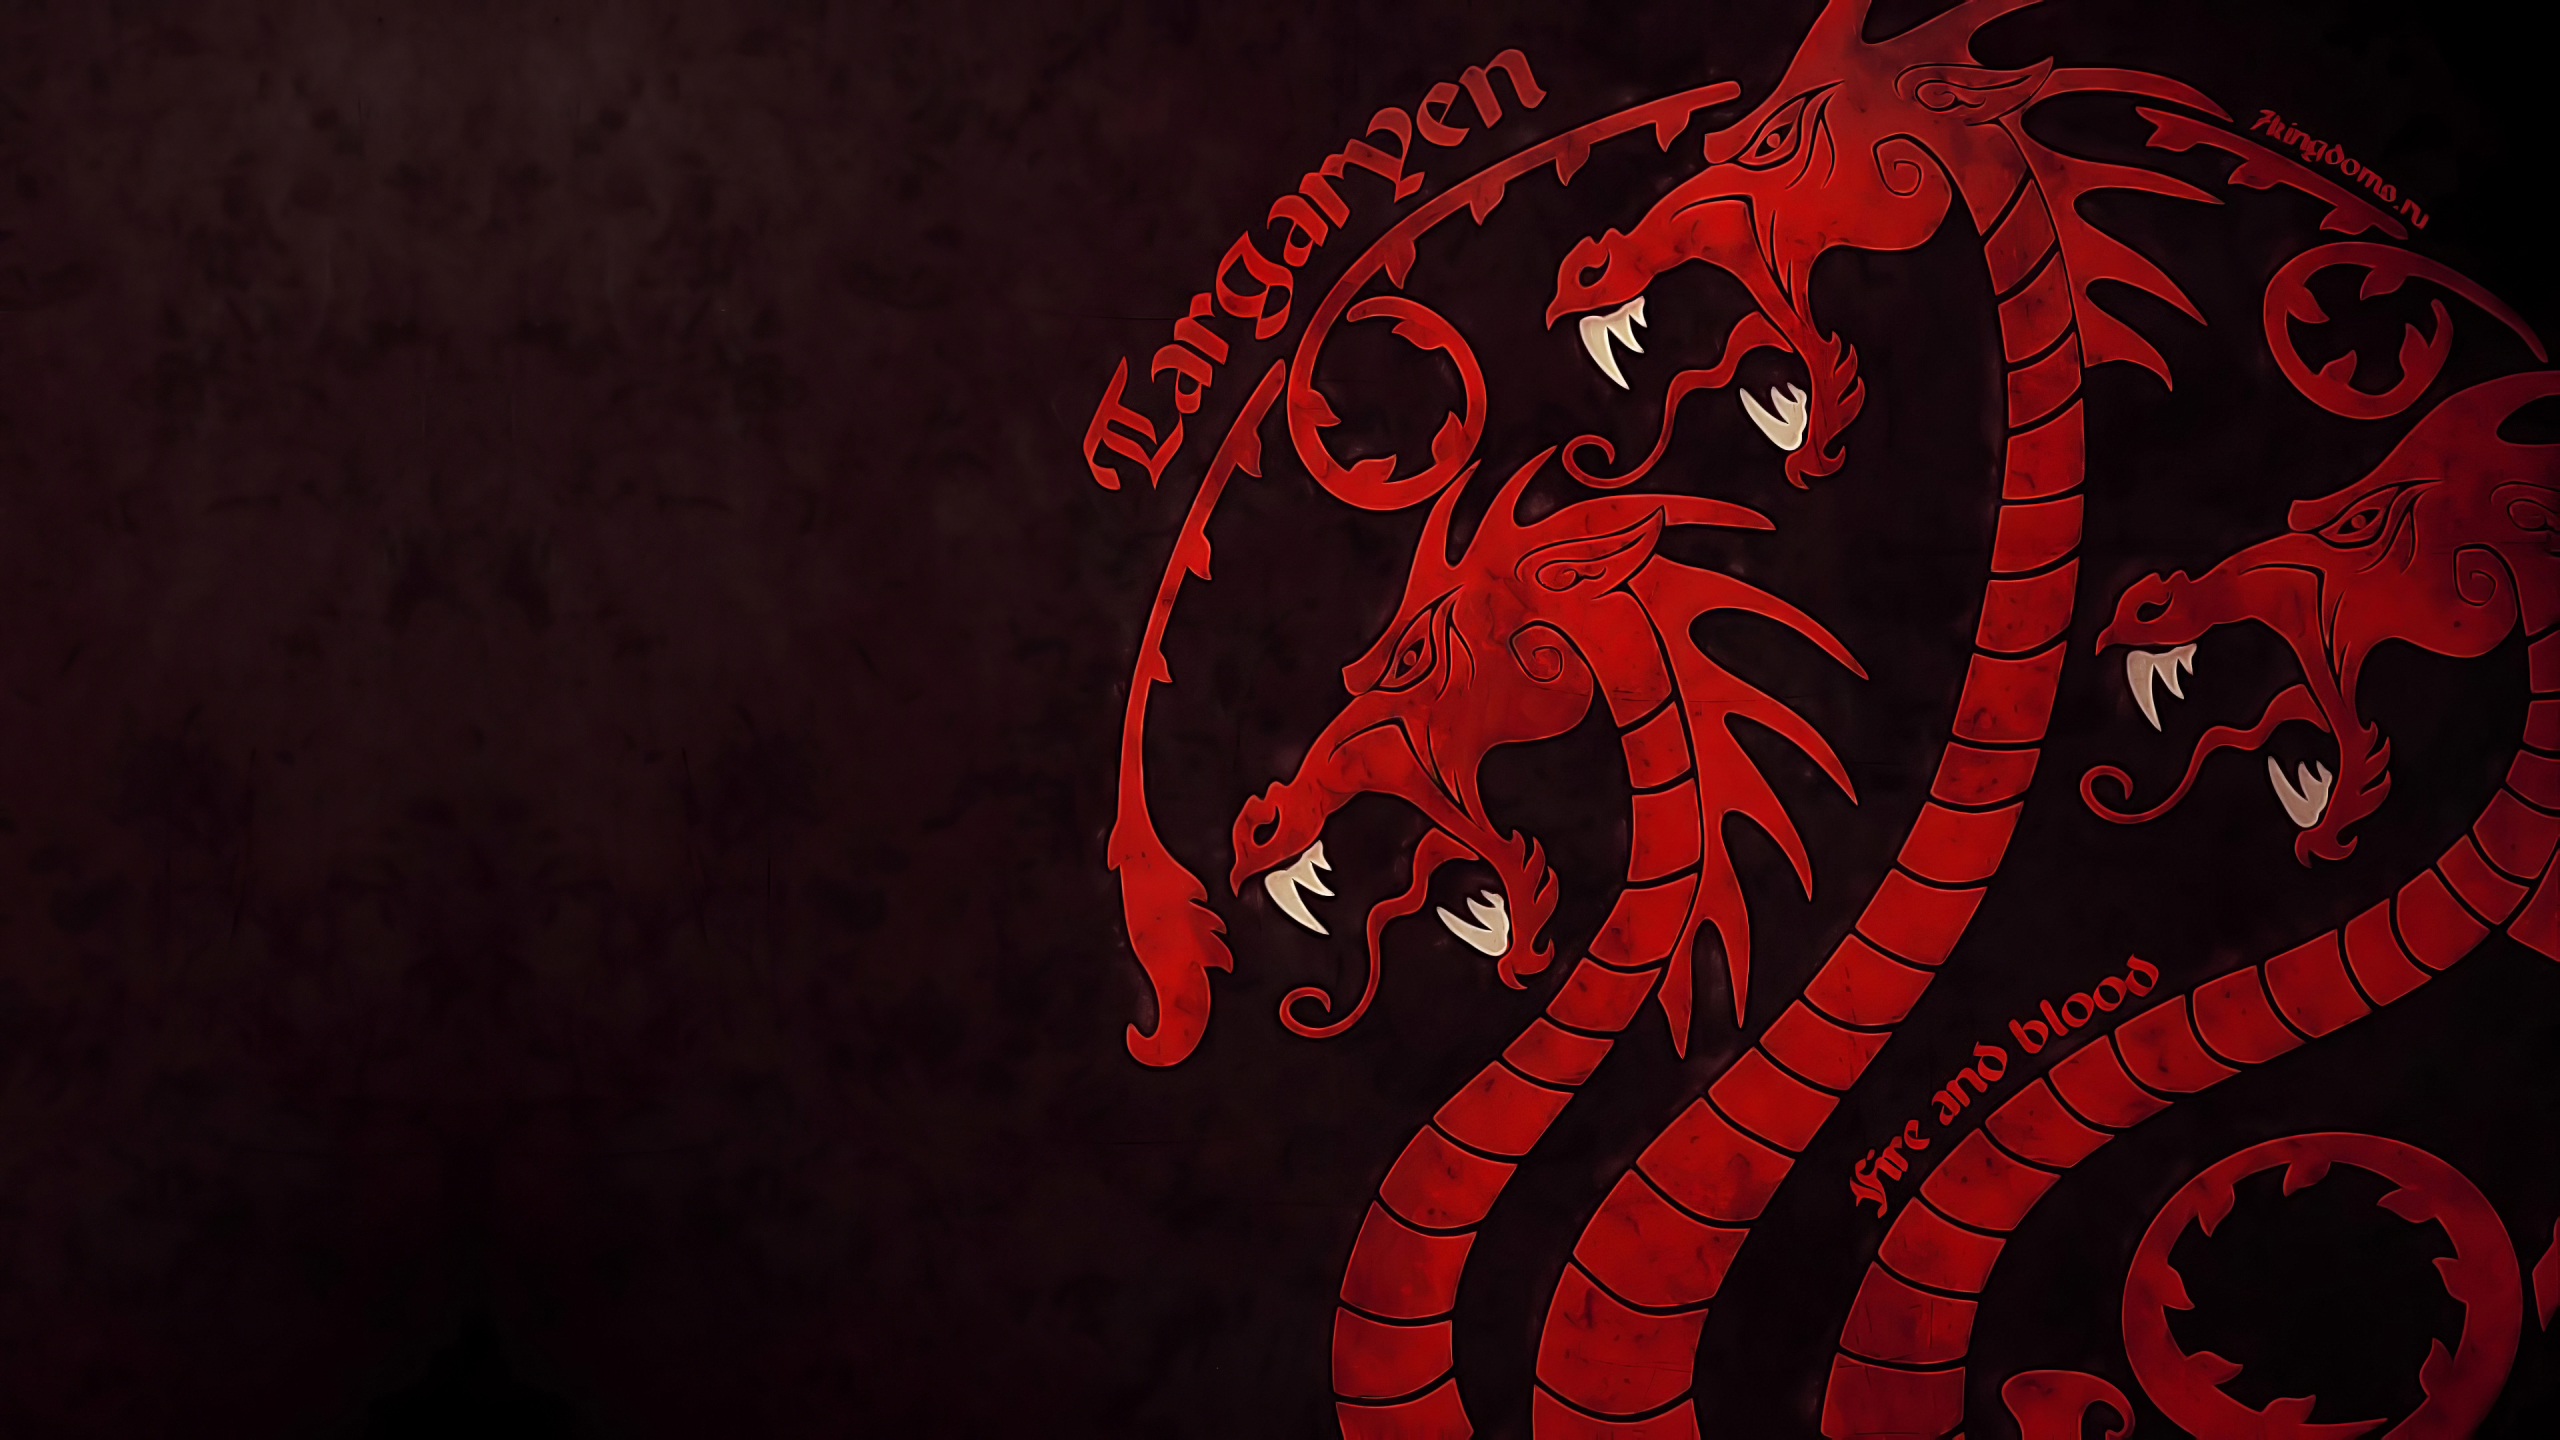 2560x1440 4k Game Of Thrones House Targaryen 1440p Resolution Wallpaper Hd Tv Series 4k Wallpapers Images Photos And Background